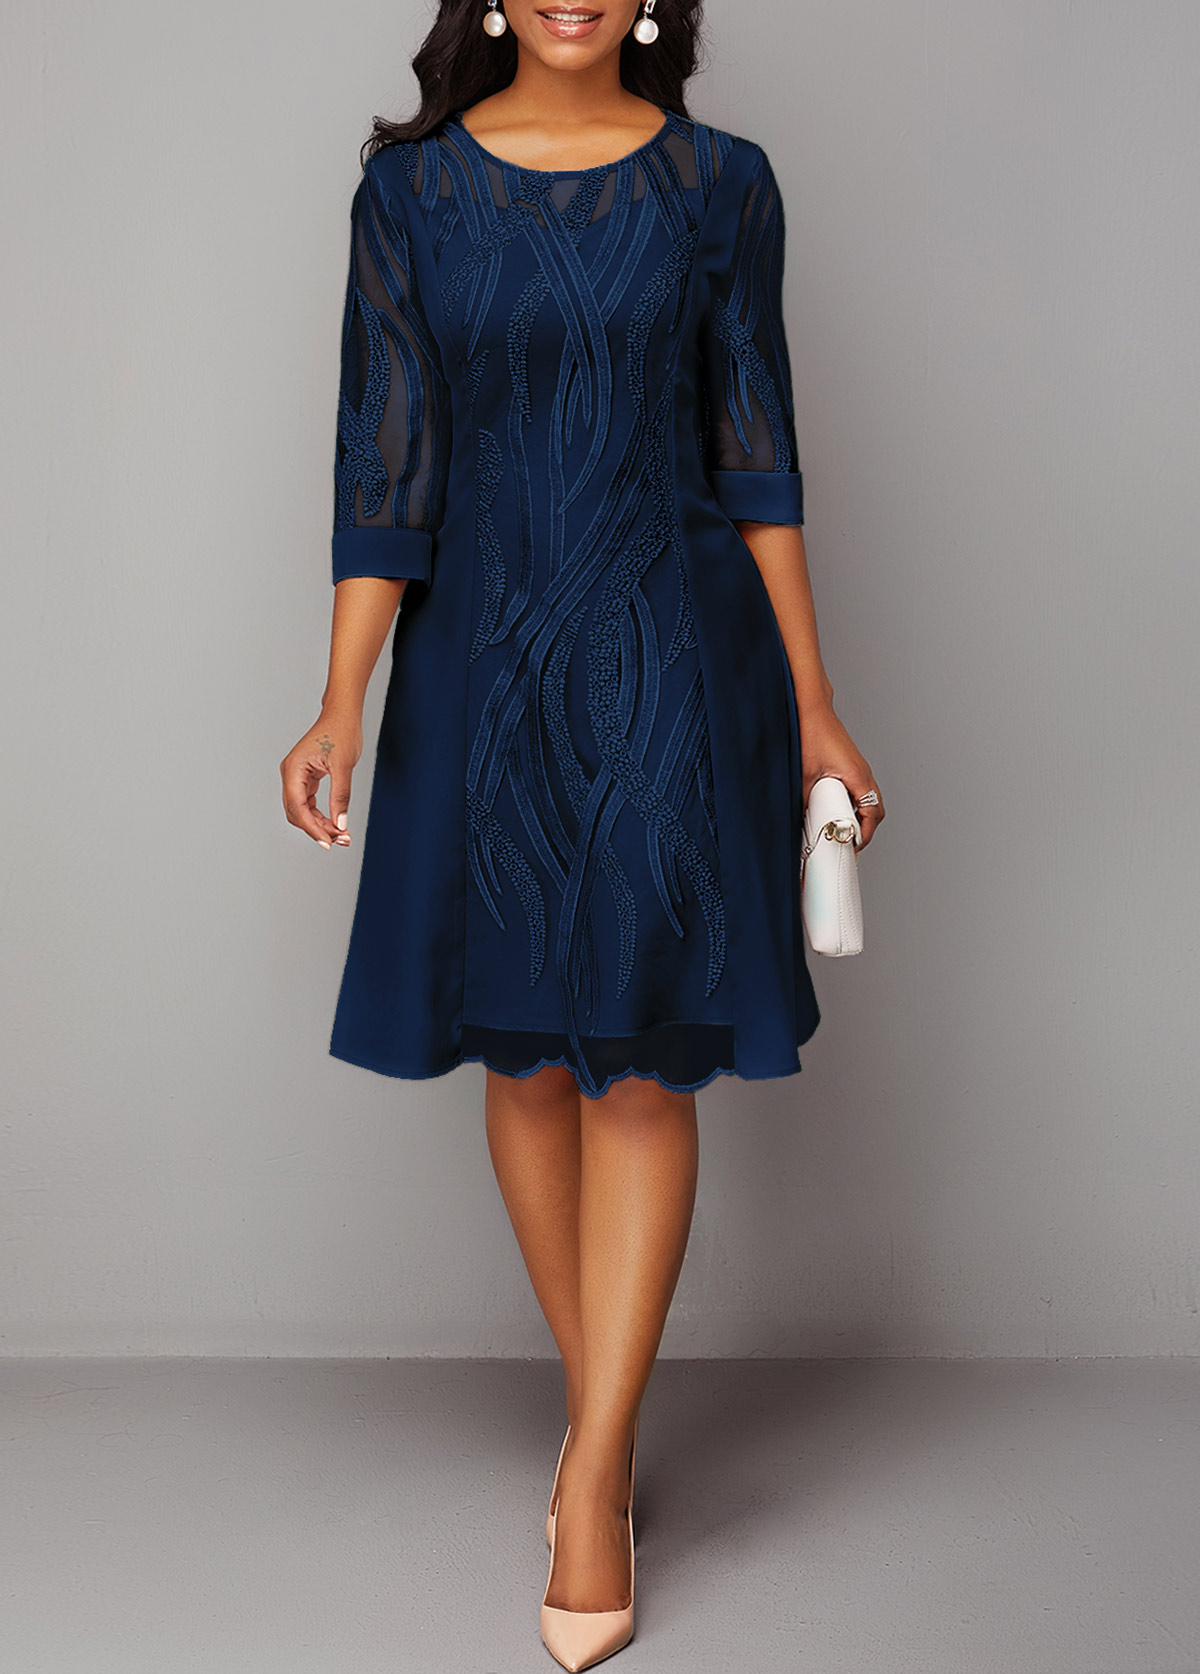 Navy Blue Round Neck Three Quarter Sleeve Lace Dress